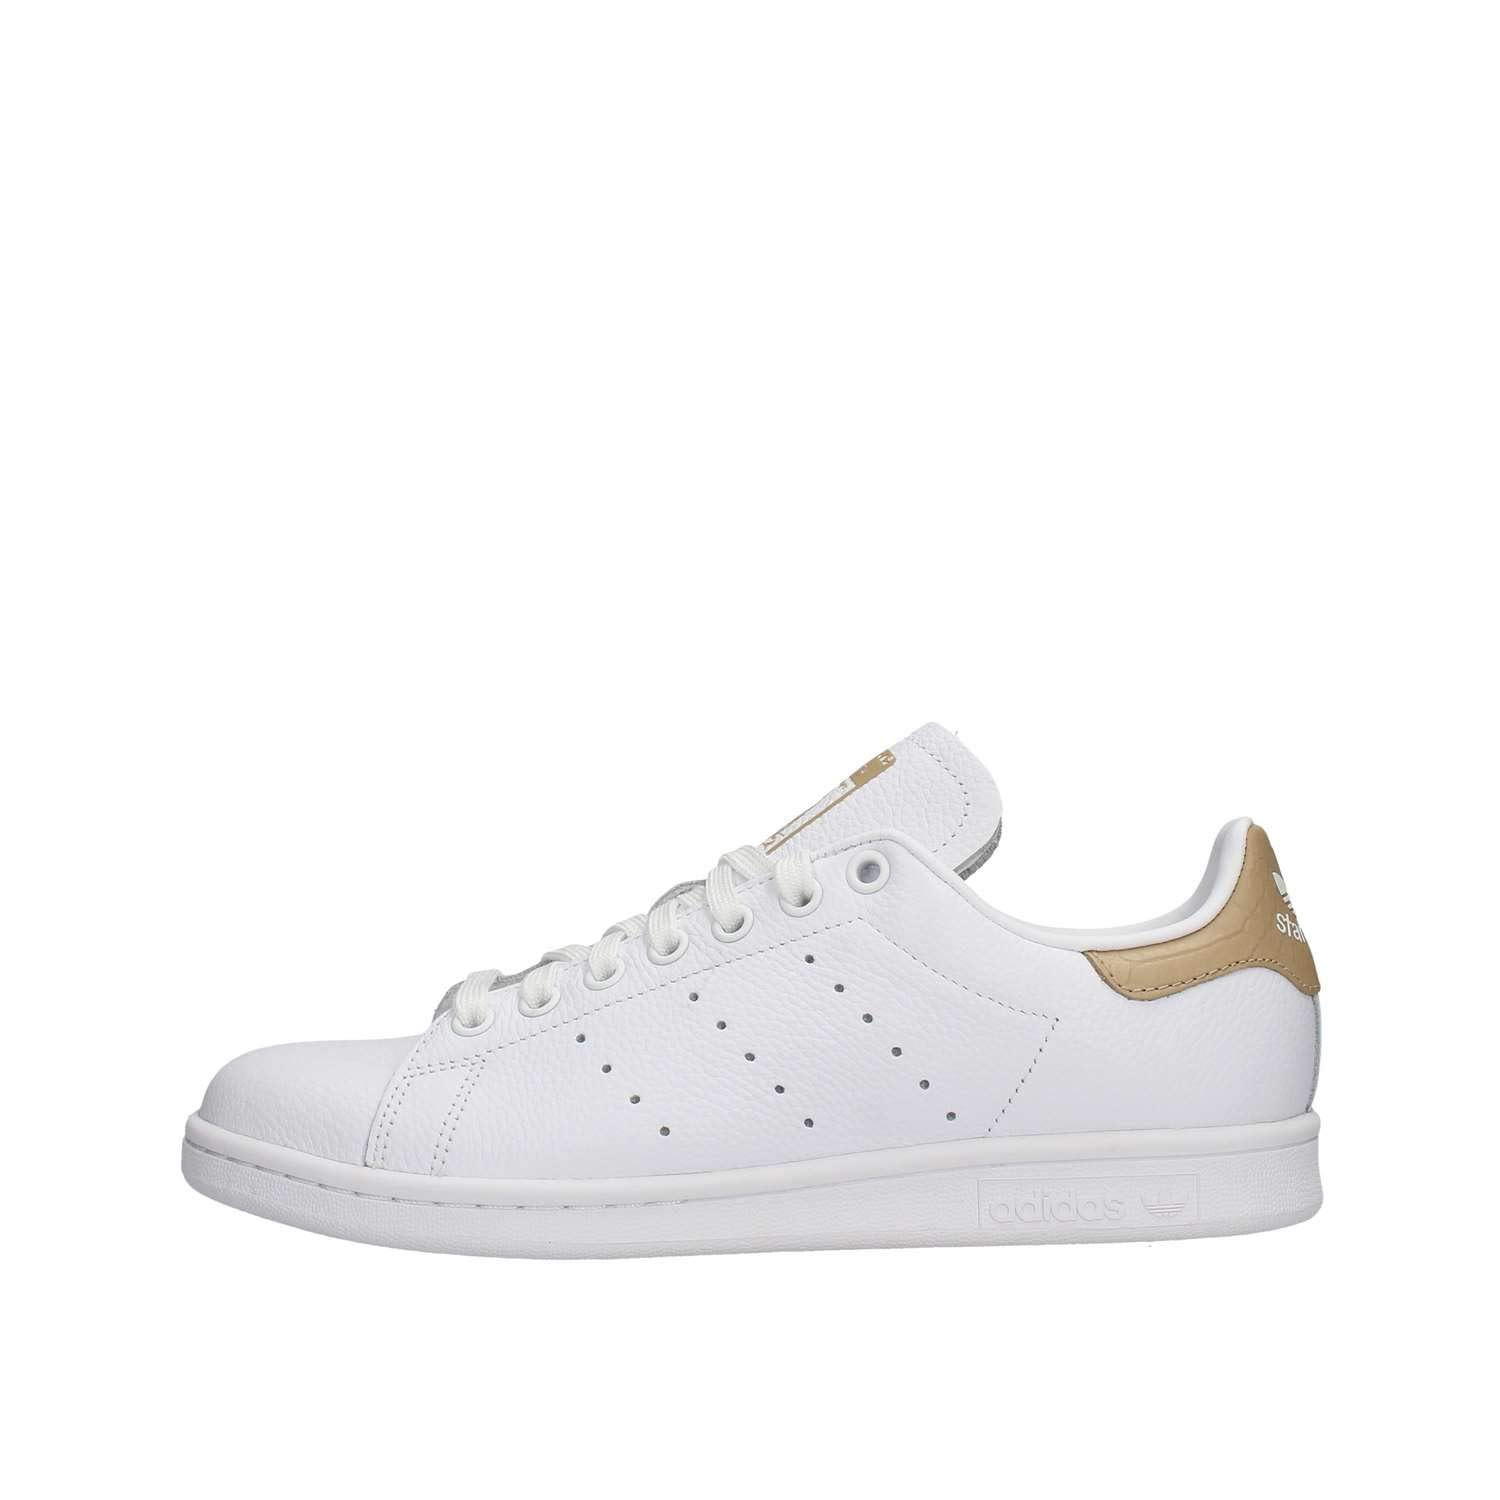 adidas Stan Smith, Chaussures Chaussures Smith, de Fitness Homme 41 1/3 EU|Blanc (Ftwbla/Ftwbla/Stcapa 0) ef2f1c